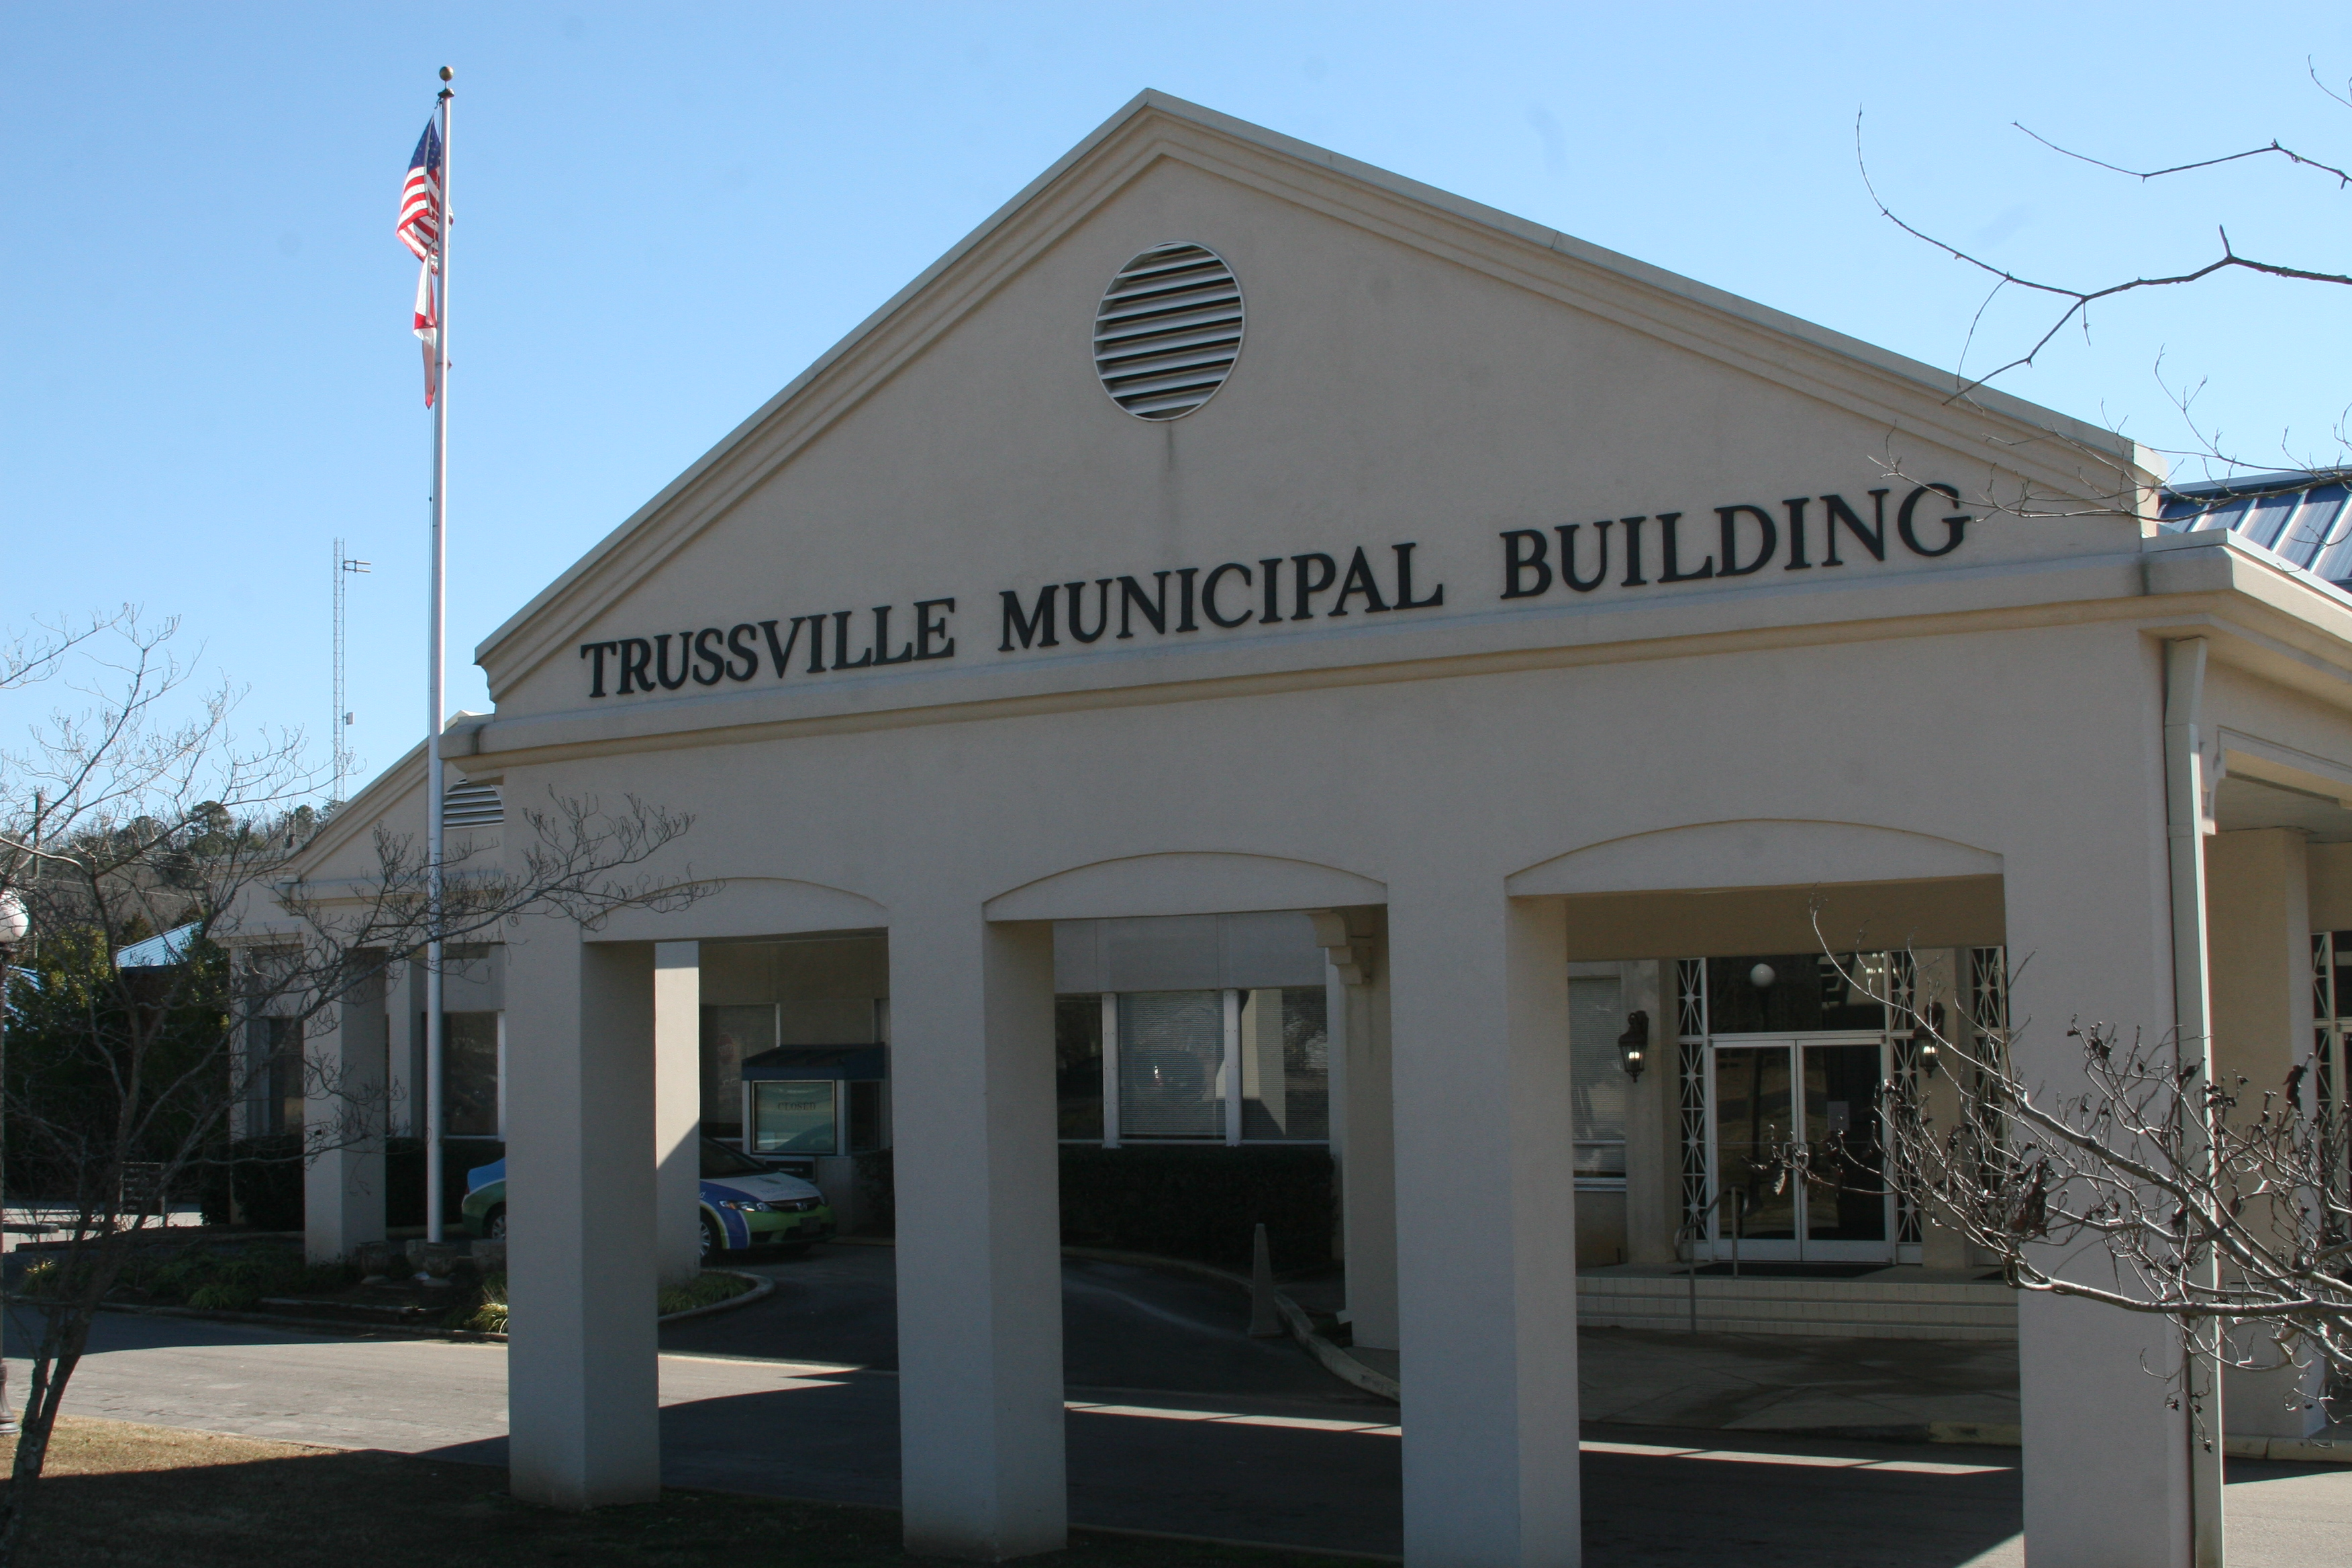 Trussville Council meets to approve promotion, hosting basketball tournament